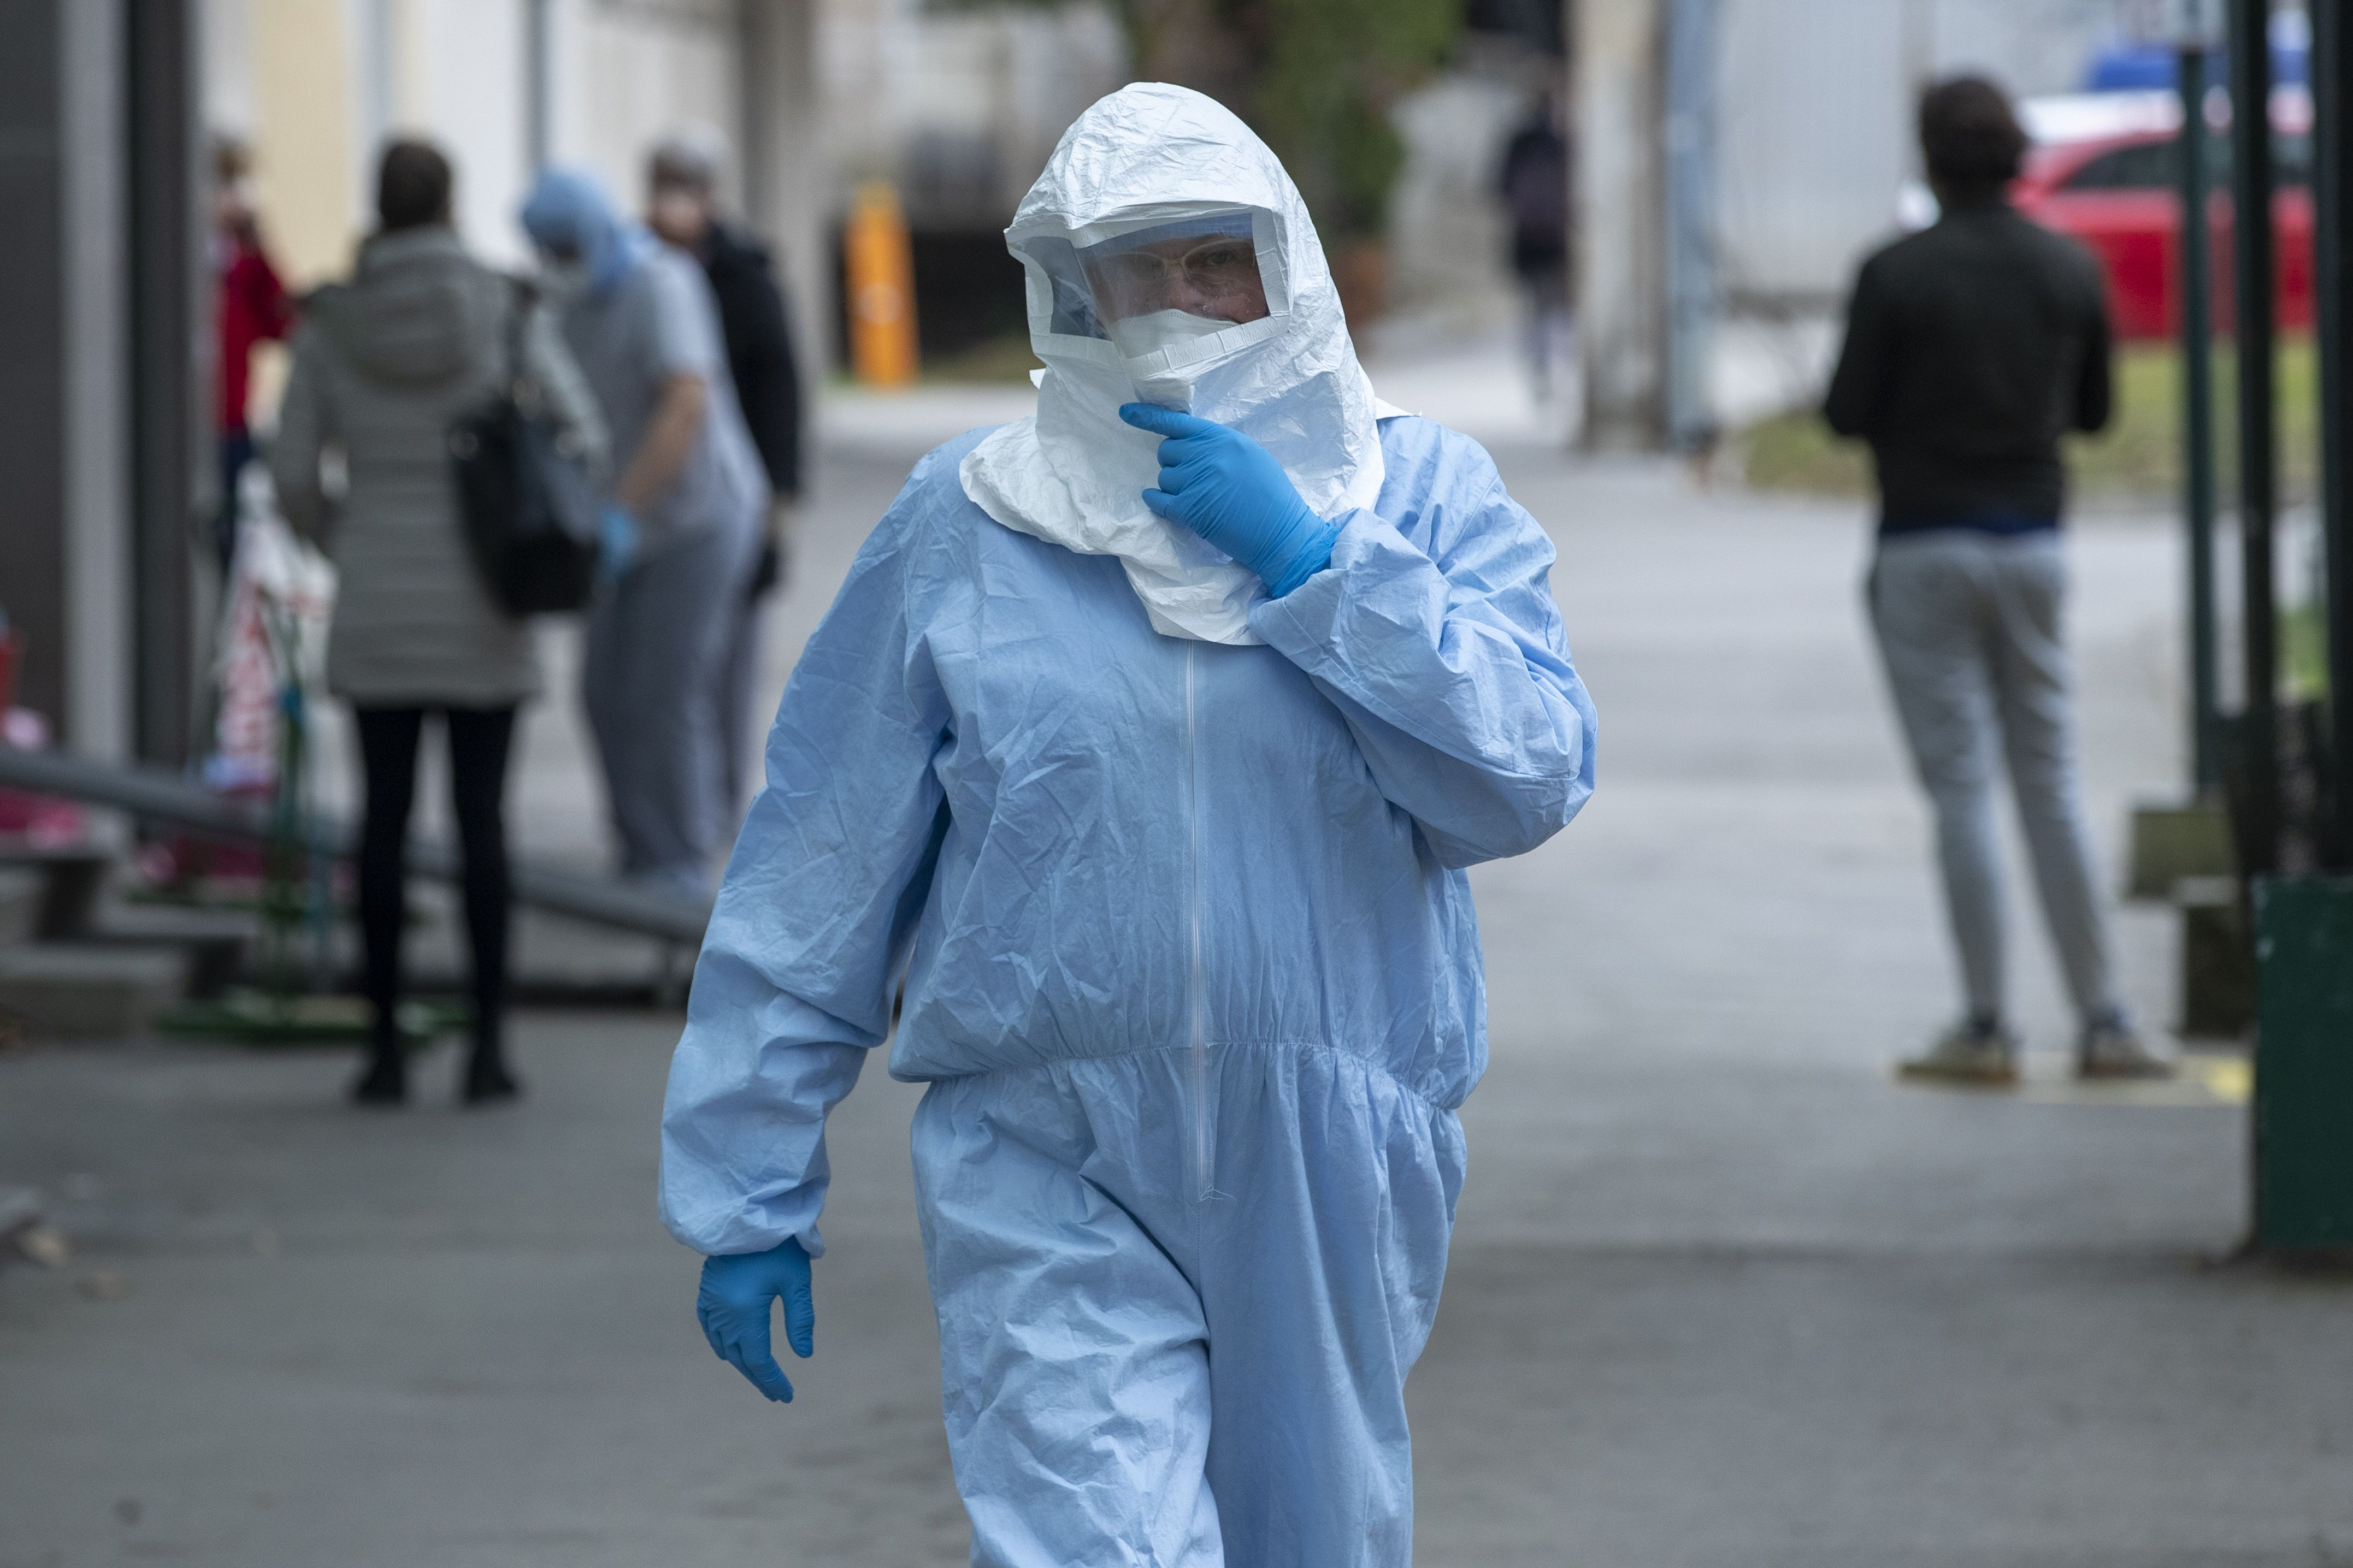 CDC health officials say spread of coronavirus is going to happen ...